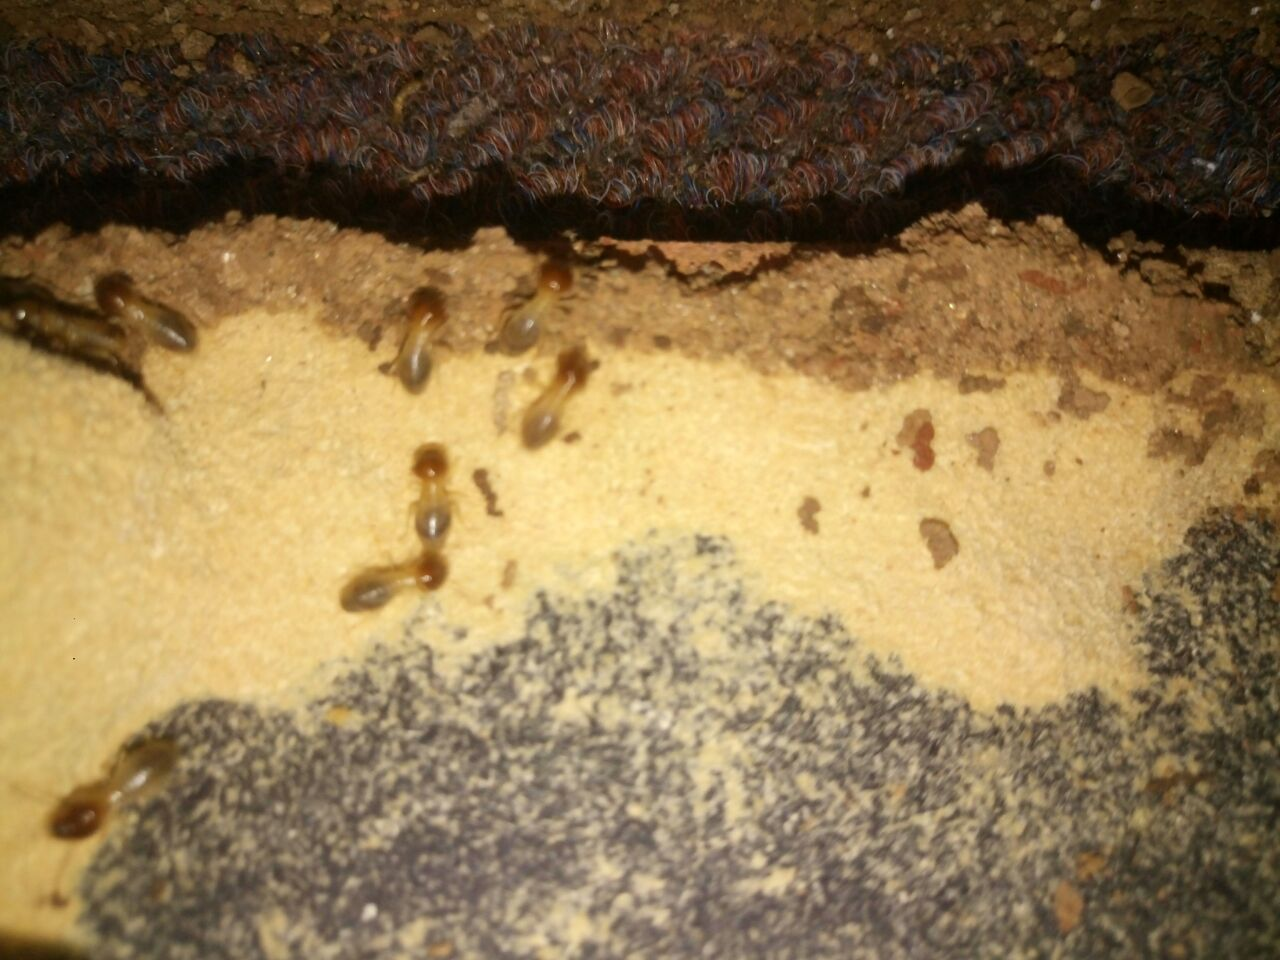 Termite Treatment Termites Termite Control Wood Termites